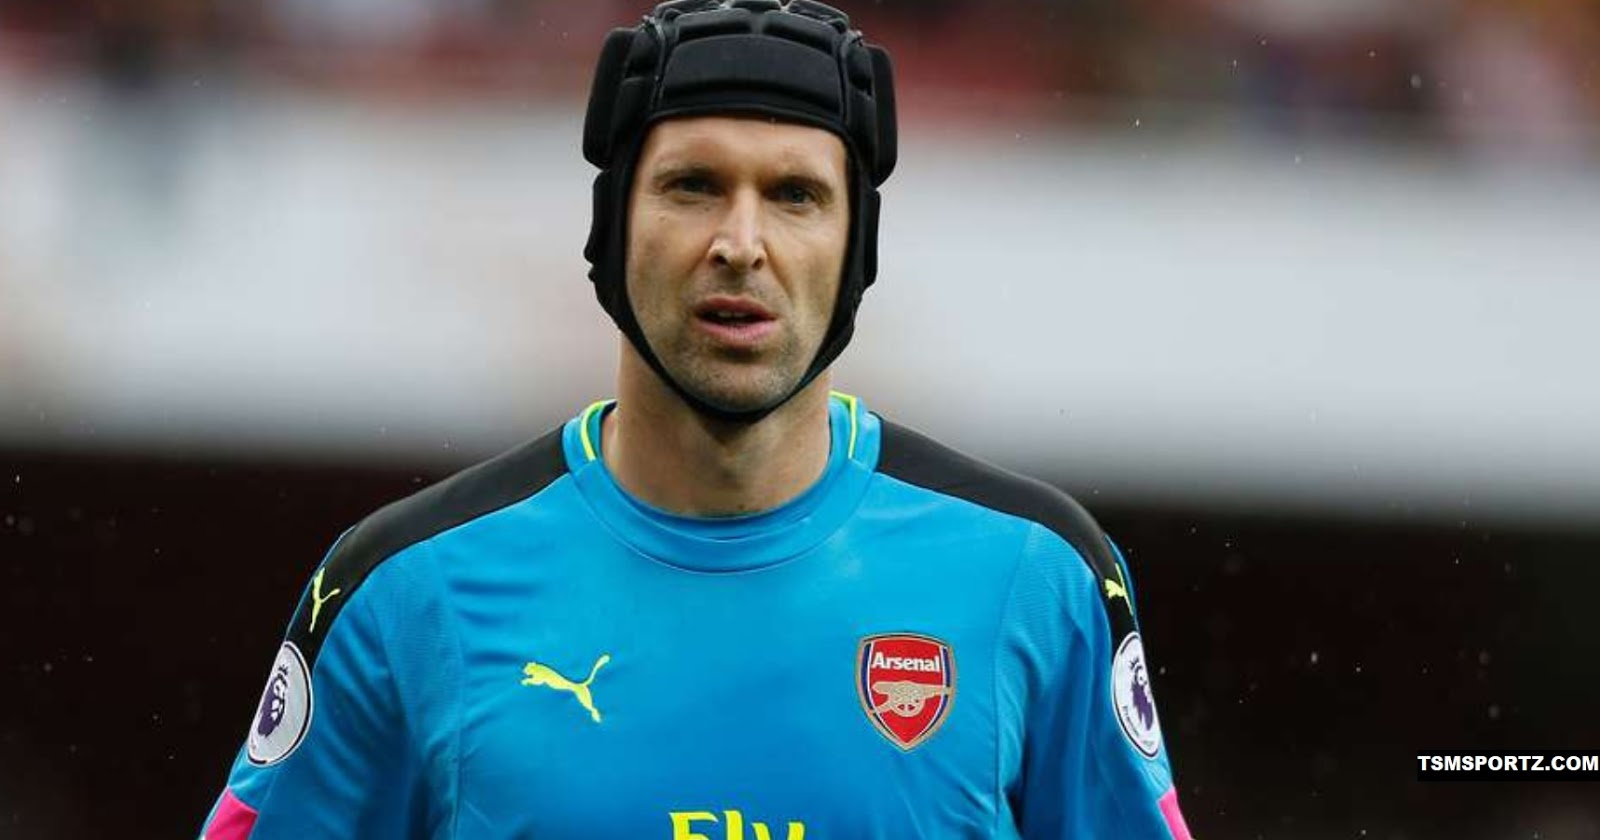 How rich is Peter Cech as goal keeper in world 2018